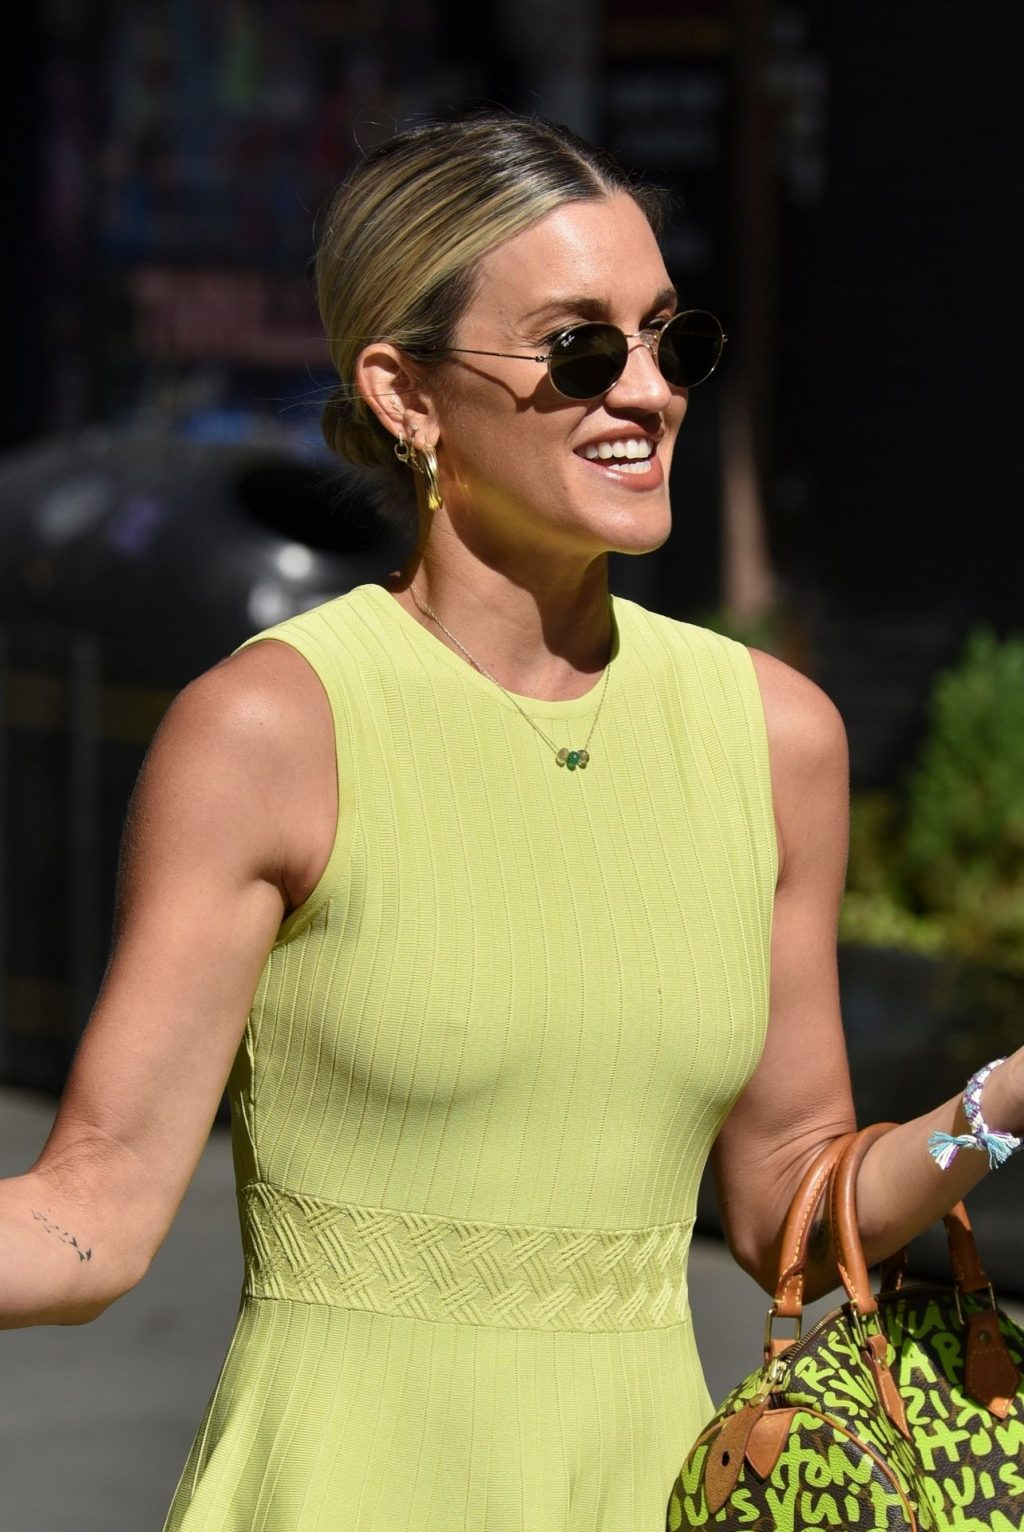 Ashley Roberts Shows Off Her Legs and Tits in Ted Baker Dress (45 Photos)